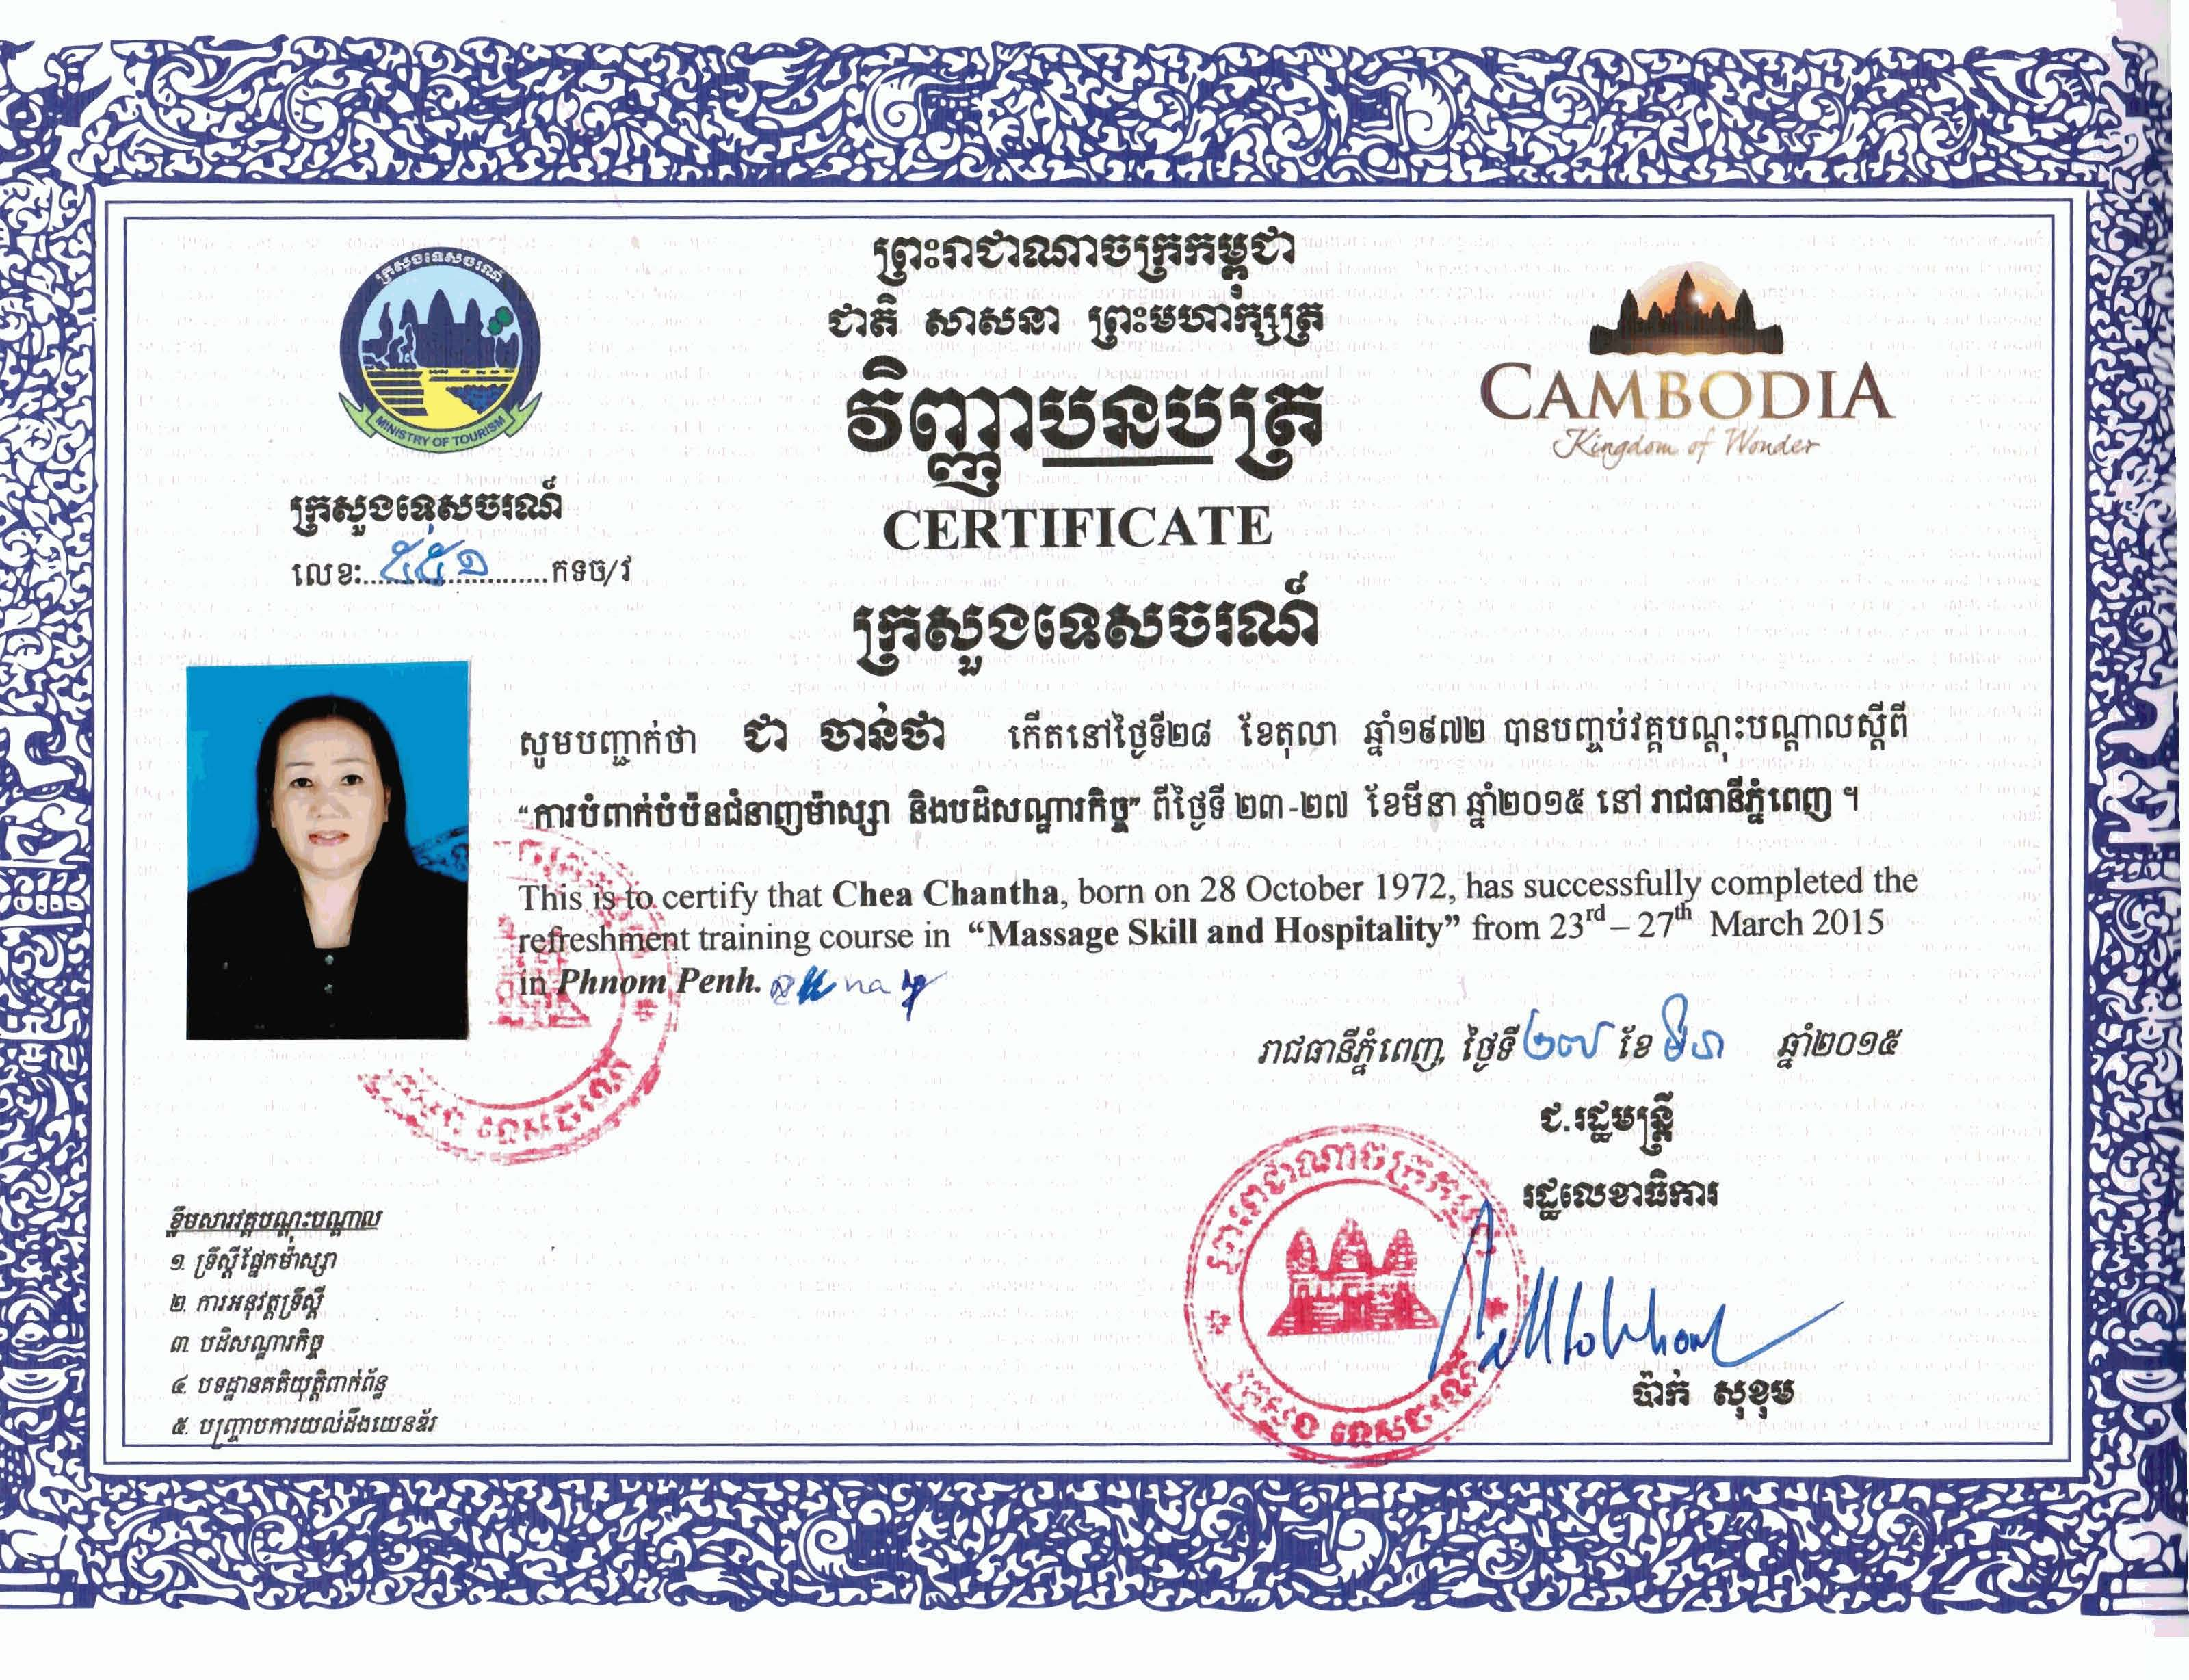 Ministry of Tourism - Certificate of Massage Skill and Hospitality- Ms. Chea Chantha